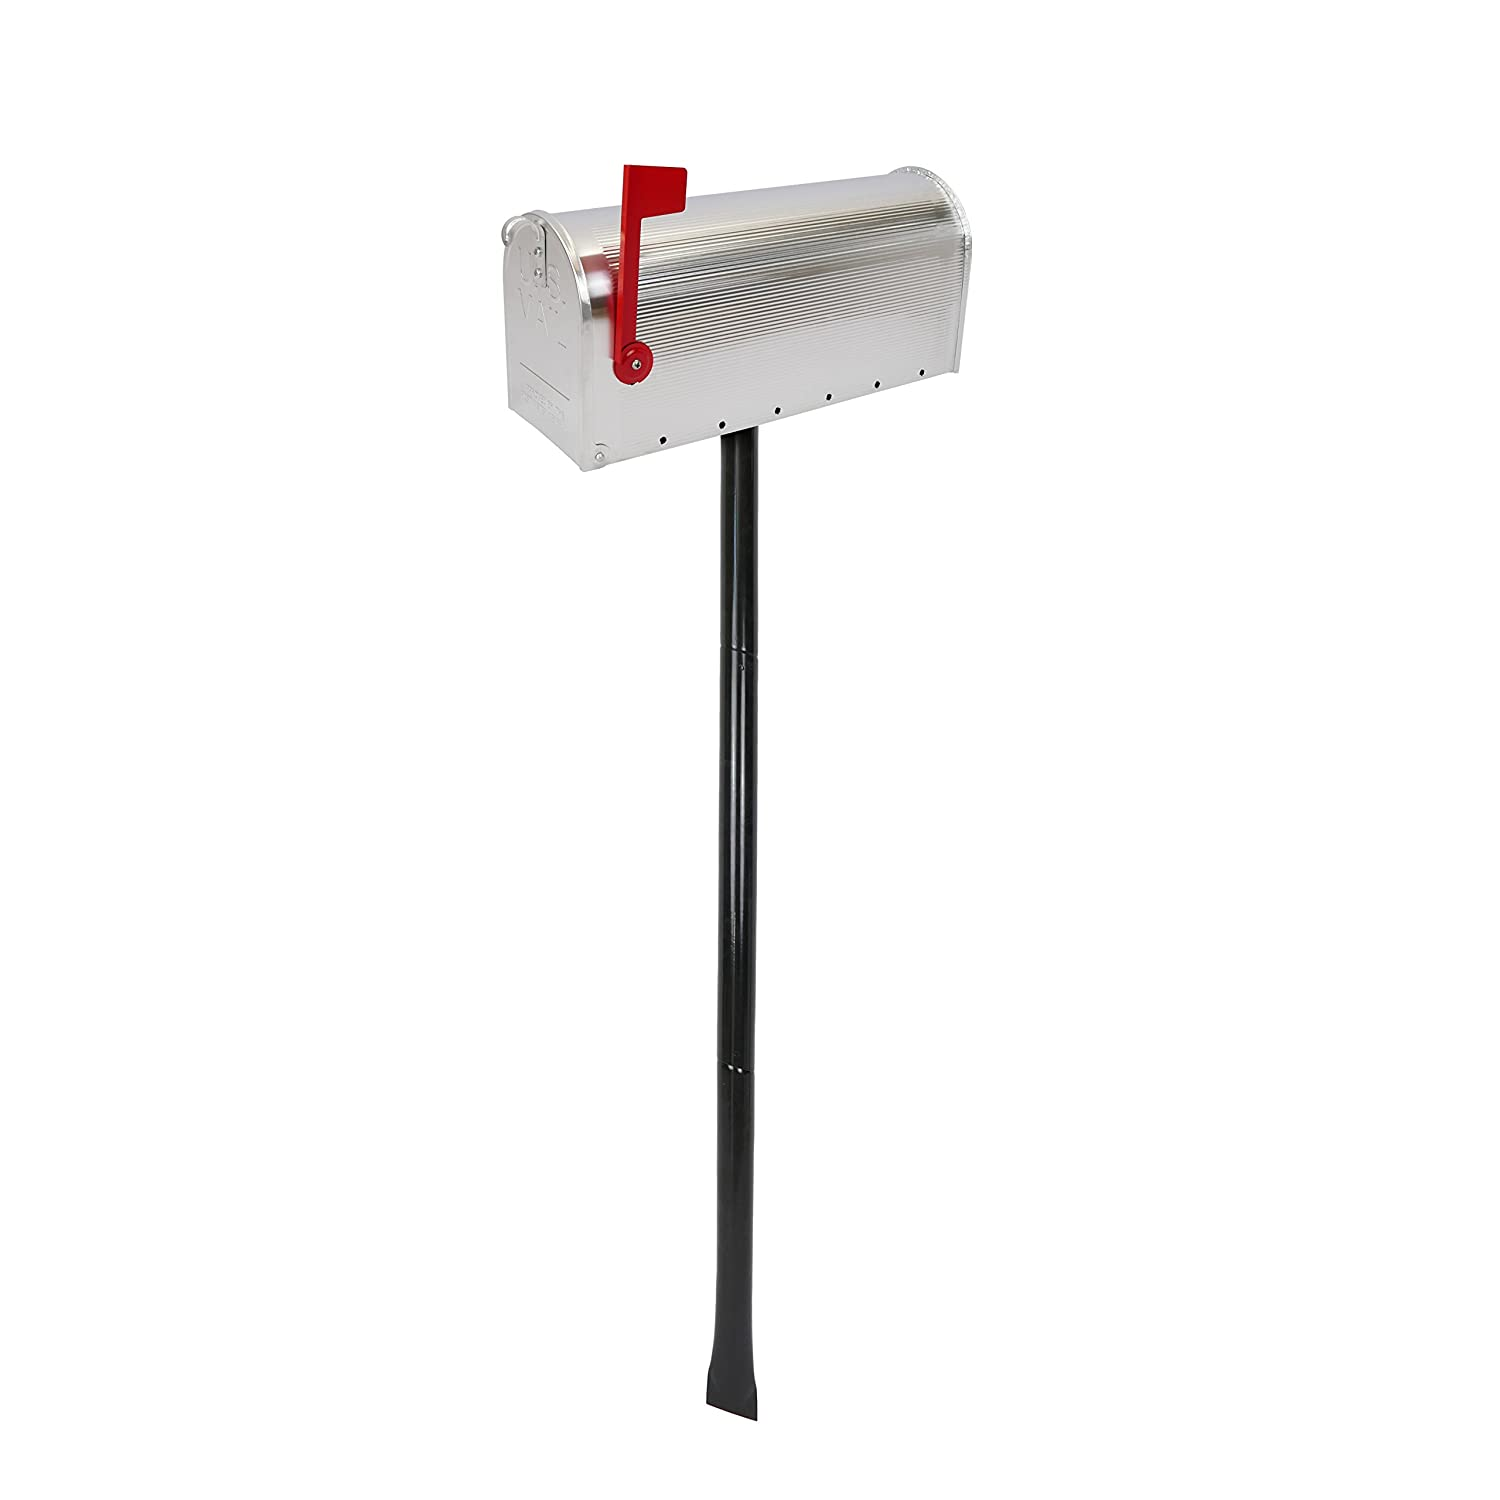 Cablematic  –   US Mail Mailbox Stand, Aluminium, for Design Postcard American) Color Silver PN26051618200173657